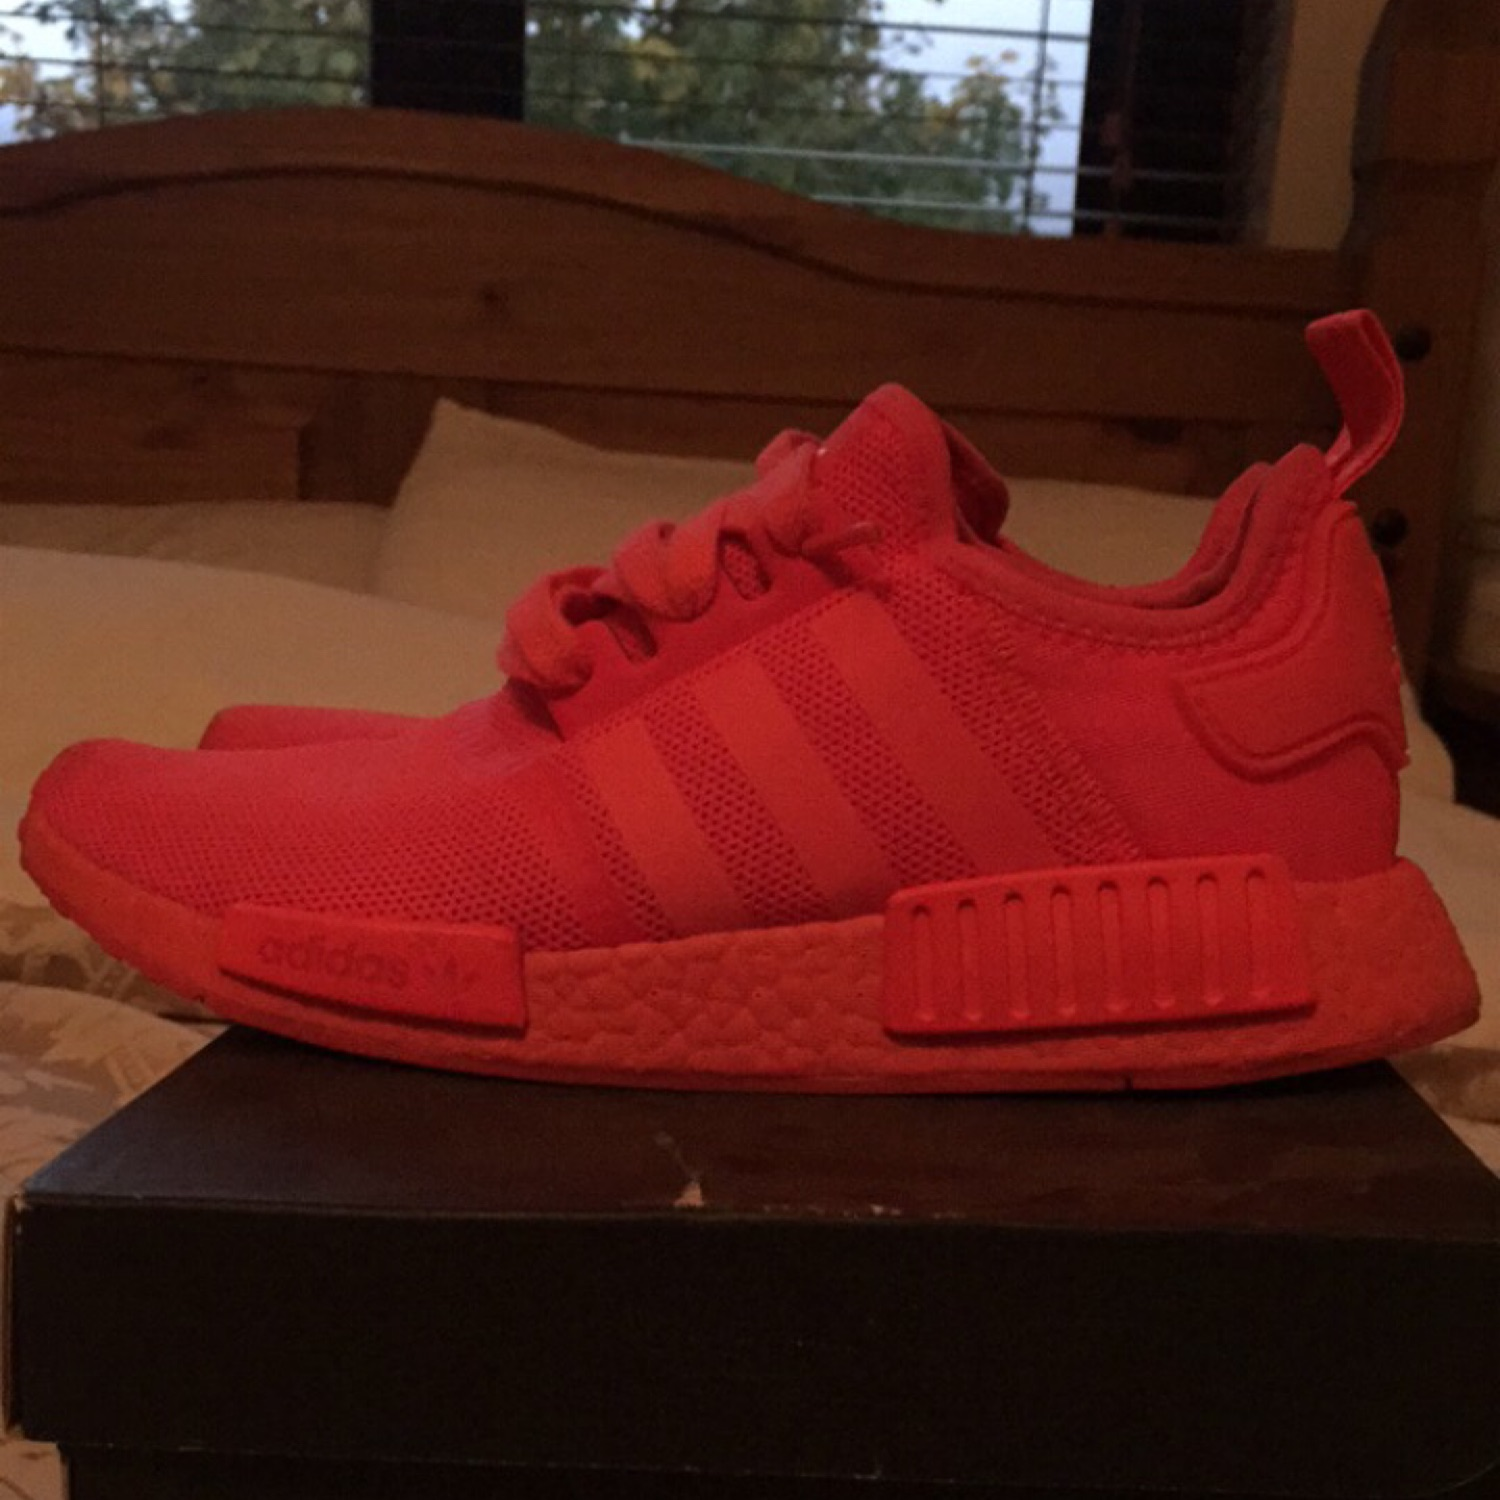 super popular e1f55 06ef5 Adidas Nmd R1 Solar Red